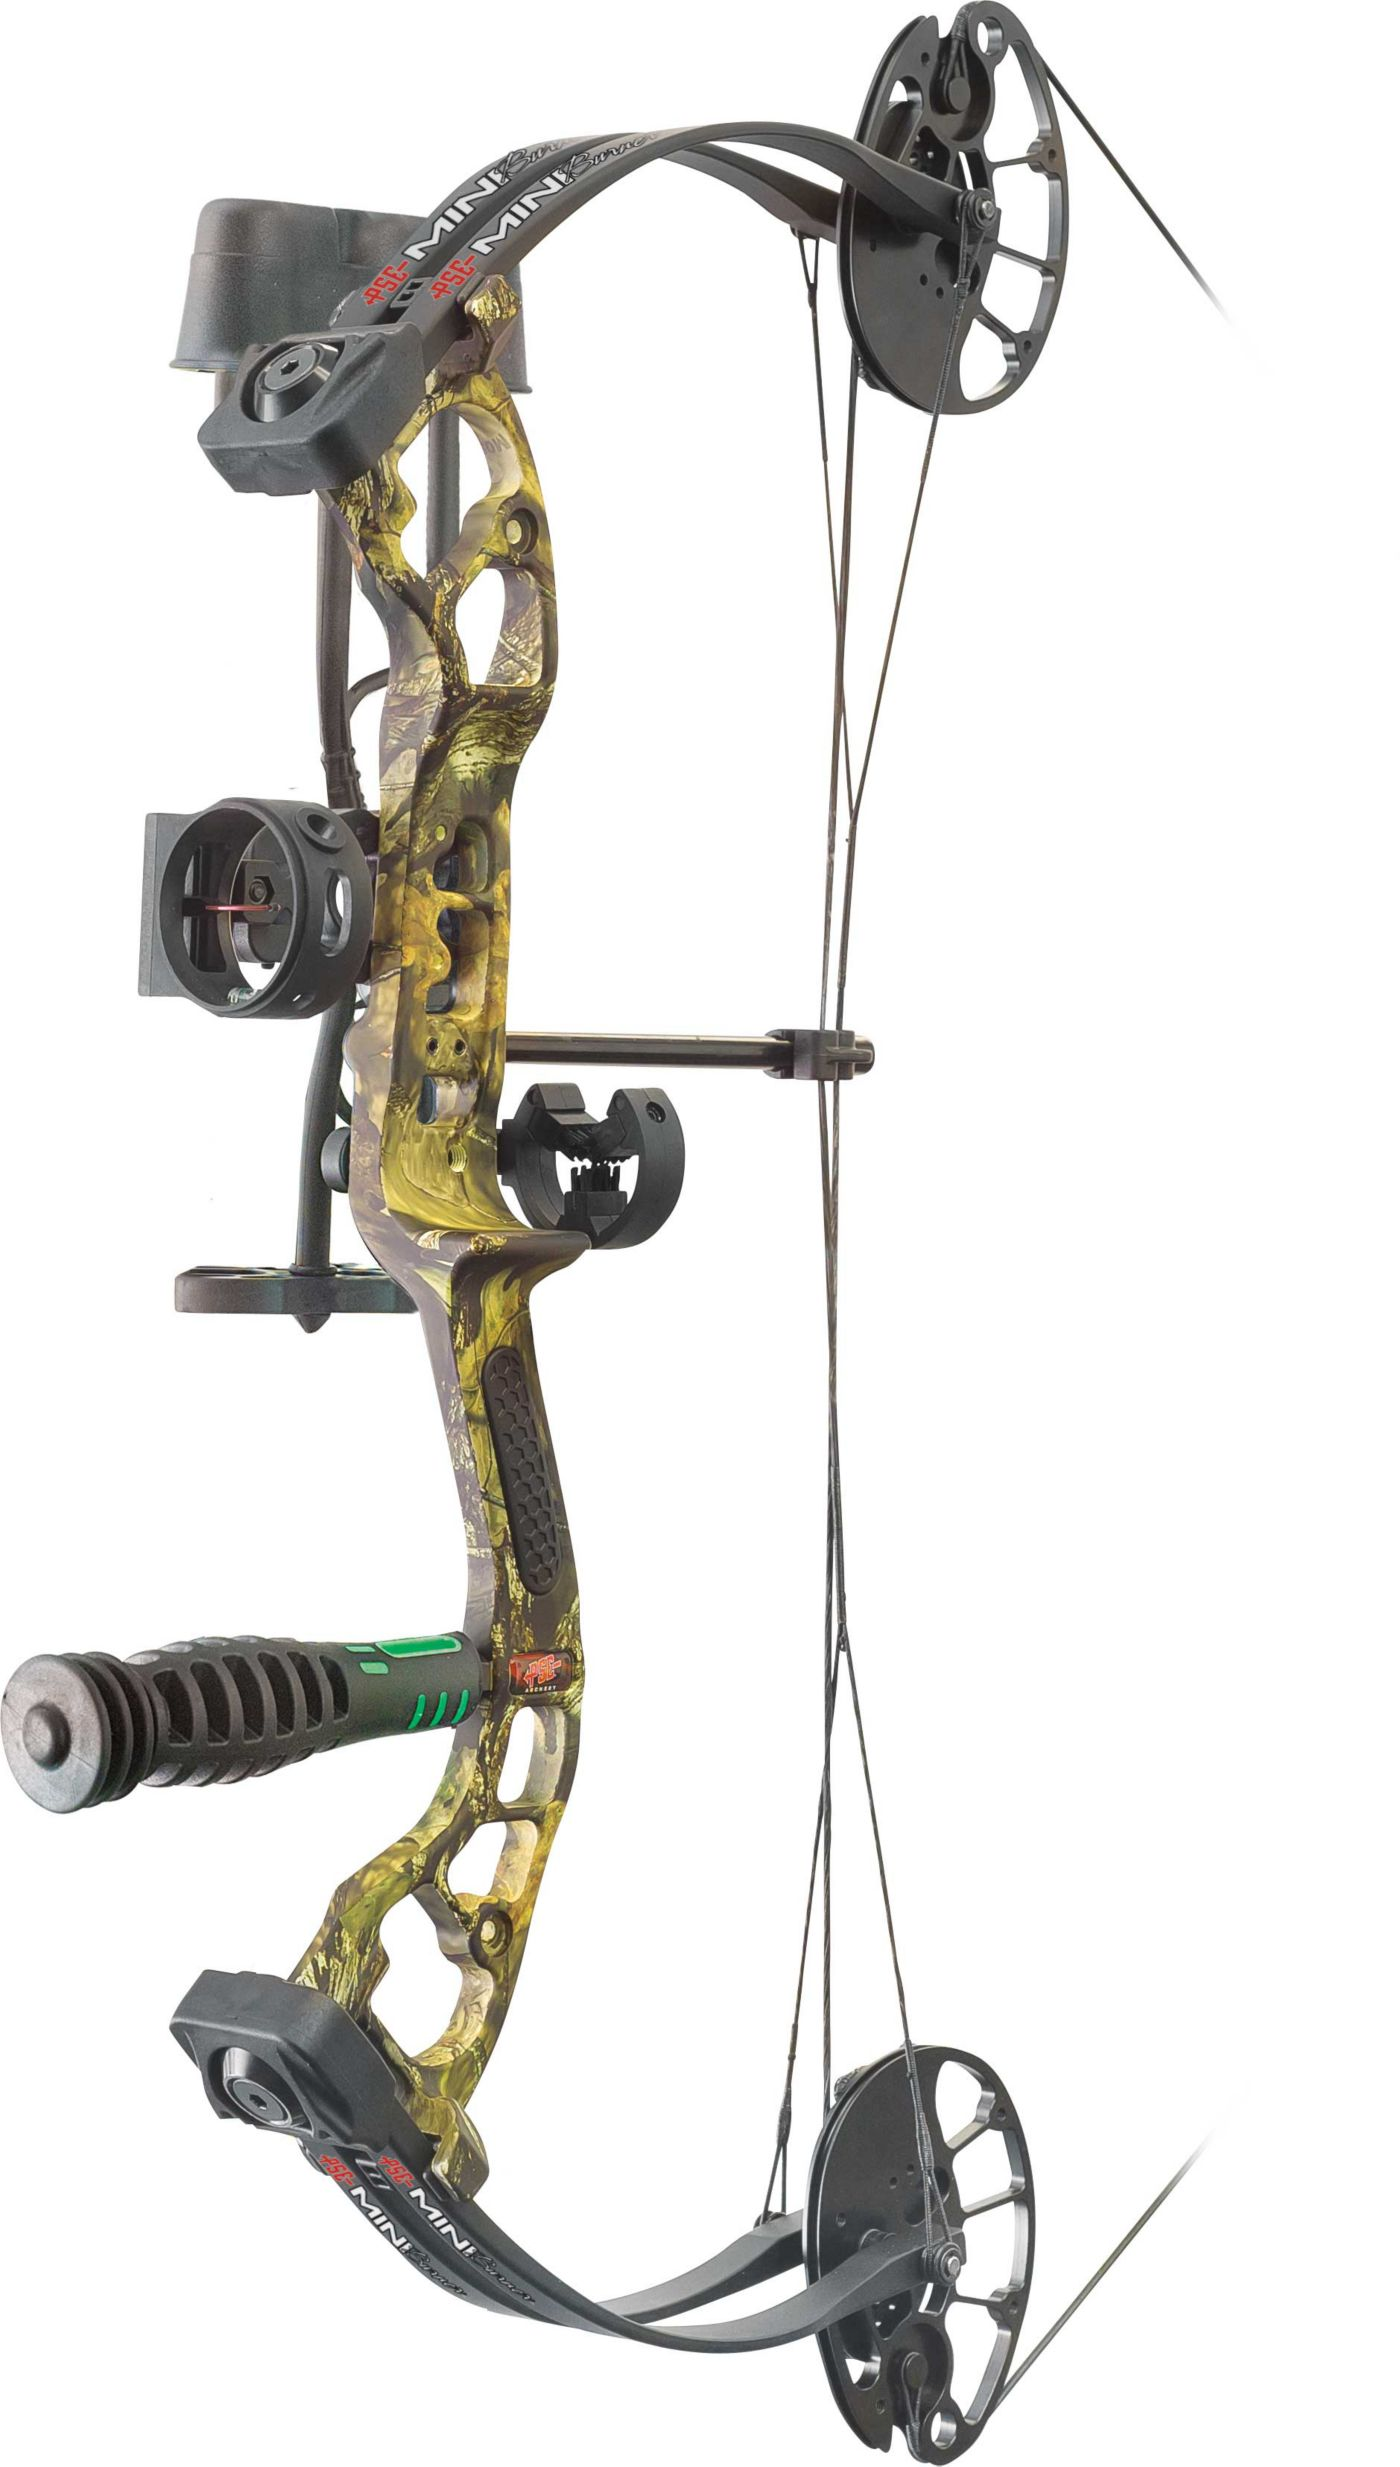 PSE Mini-Burner Youth Compound Bow Package